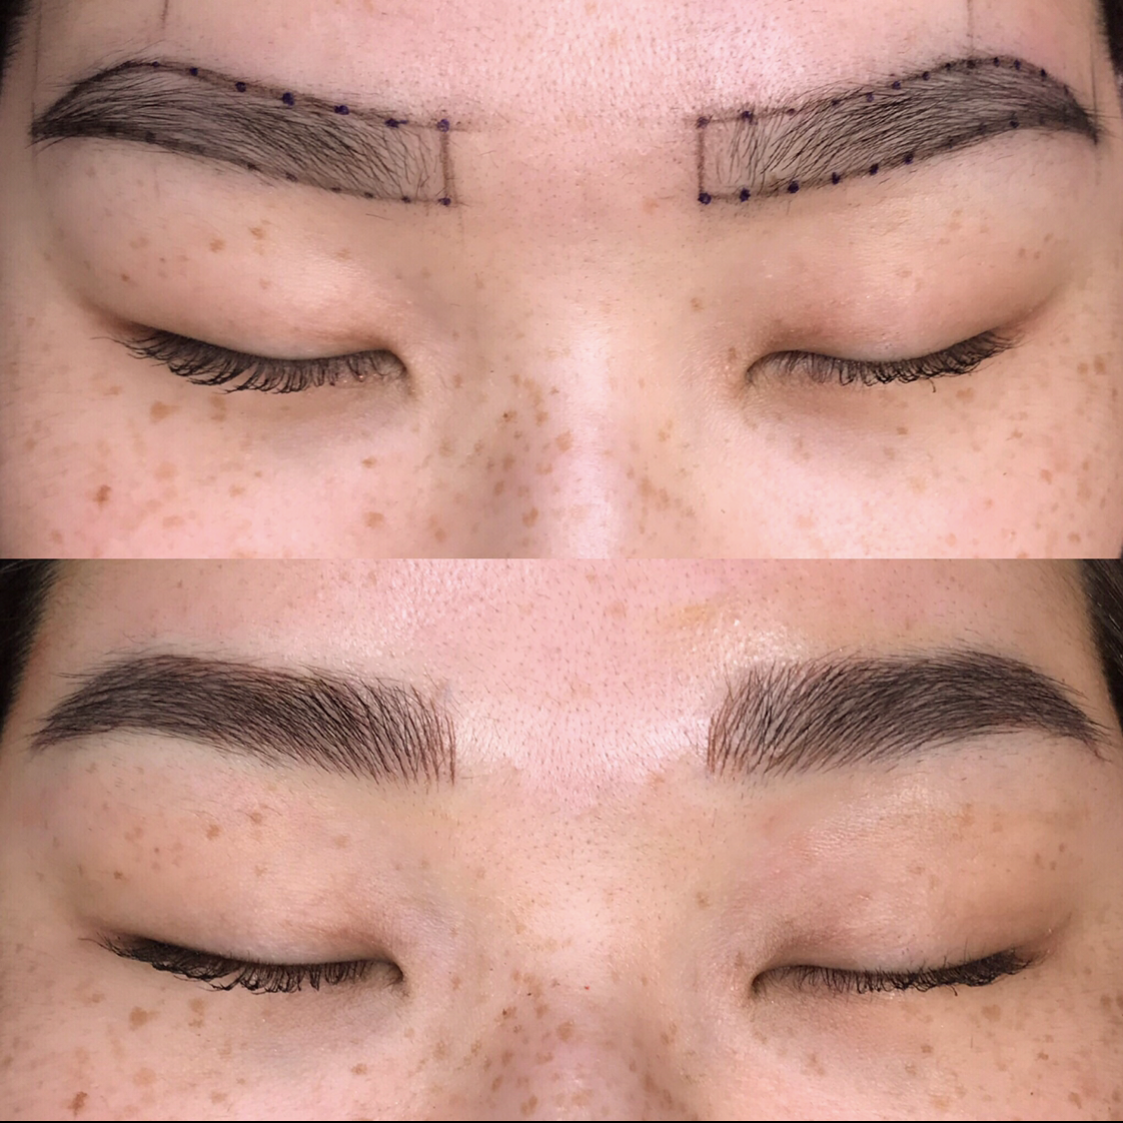 Initial Microblading Session - Your entire Microblading process should take approximately 2-3 hours.Step 1: We take photos of your bare browsStep 2: Then we sanitize the brow area with an alcohol padStep 3: Your specialist will then take a photo using a brow symmetry app to measure the browsStep 4: Then your desired brow shape will be mapped onto your brows using an eyebrow pencilStep 5: You and your specialist will come to an agreement on your new perfect shape!Step 6: Photos will be taken and then your brow area will be pre-numbed (you can opt out of this step)Step 7: Wait time for the numbing cream is 30 minutes. At this time, your specialist will go over the Aftercare instructionsStep 8: The Microblading procedure begins and it will take approximately 1 hour for completionStep 9: Done! Your photo will be taken of your new brows and you are out the door!